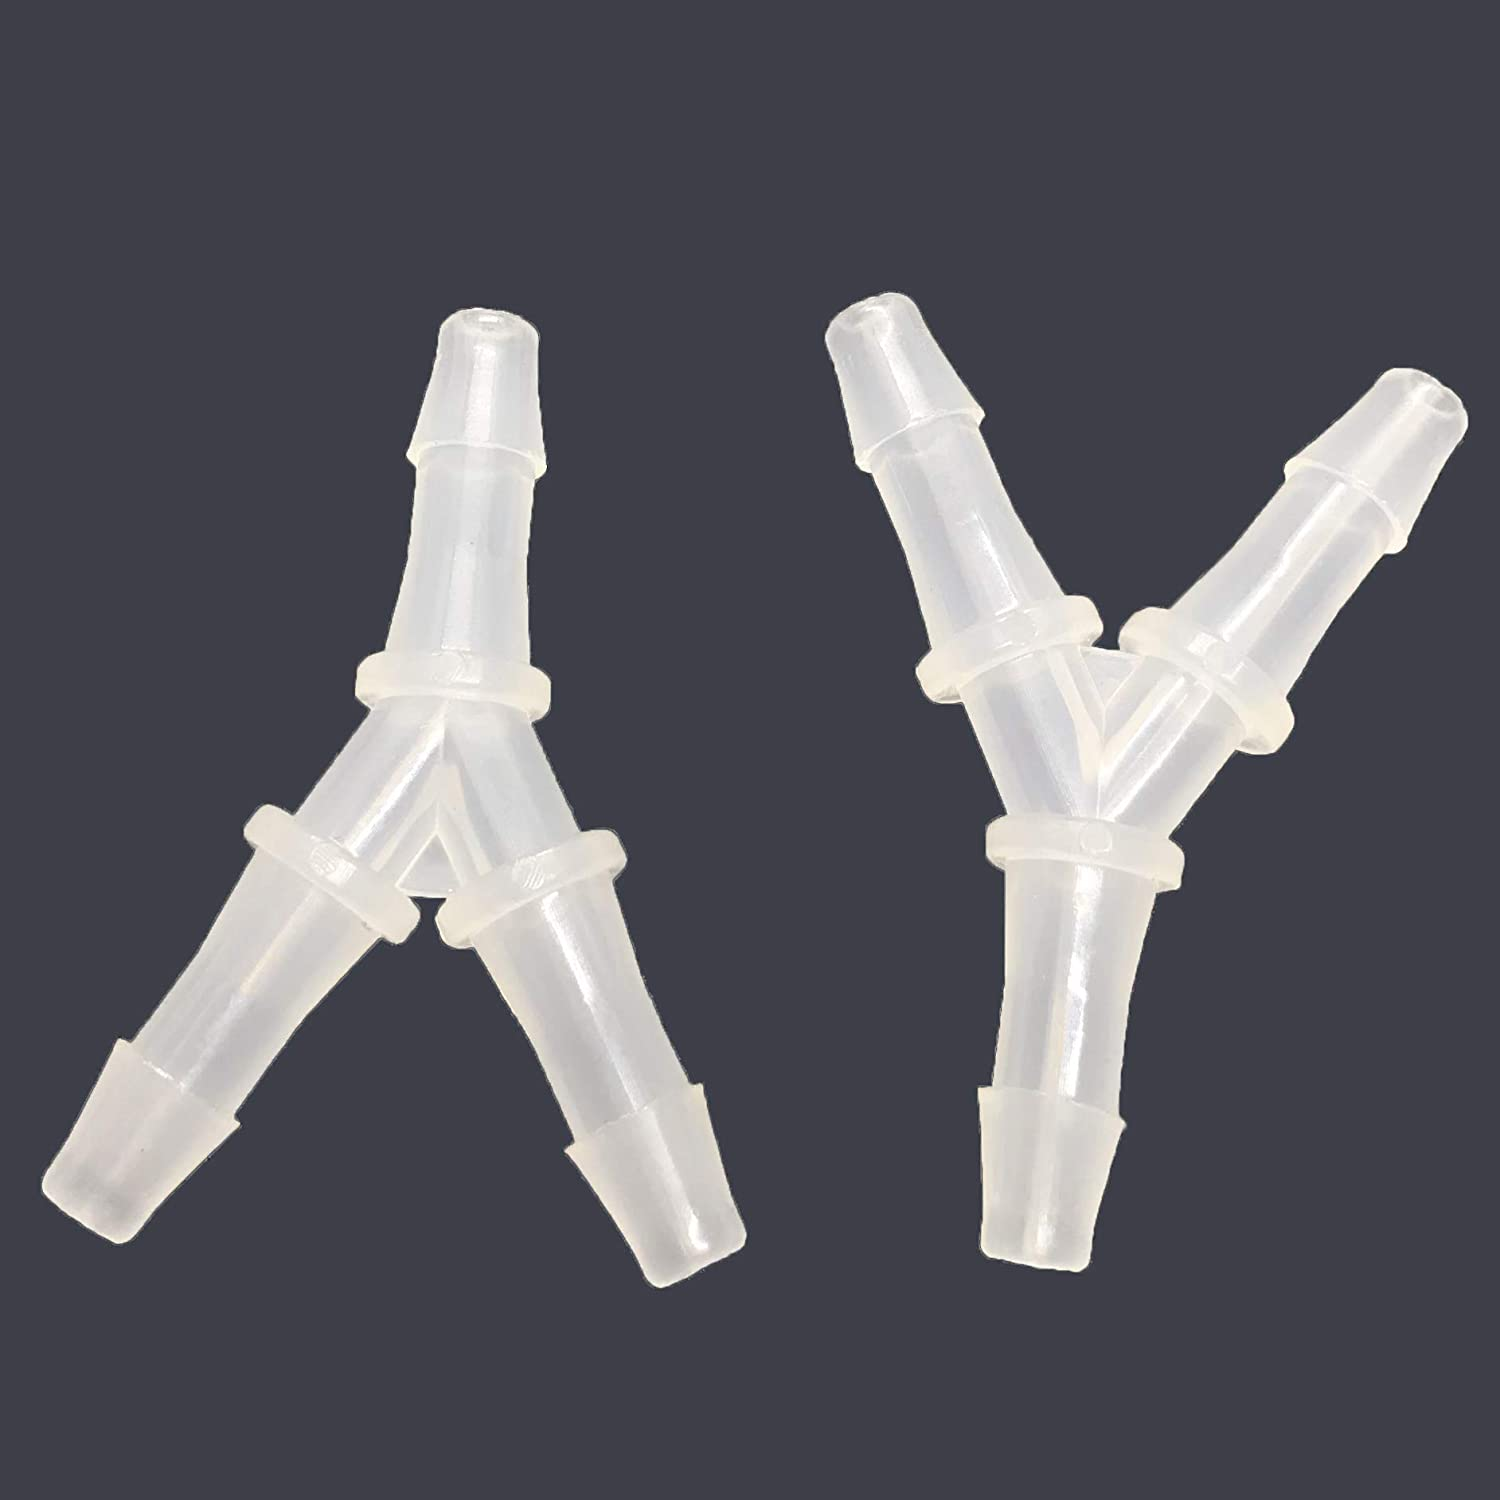 PP Barb Y Tee 5//16 Hose ID Fitting Polypropylene Plastic Pipe Connectors Boat Water Air Aquarium O2 Fuel Pack of 2